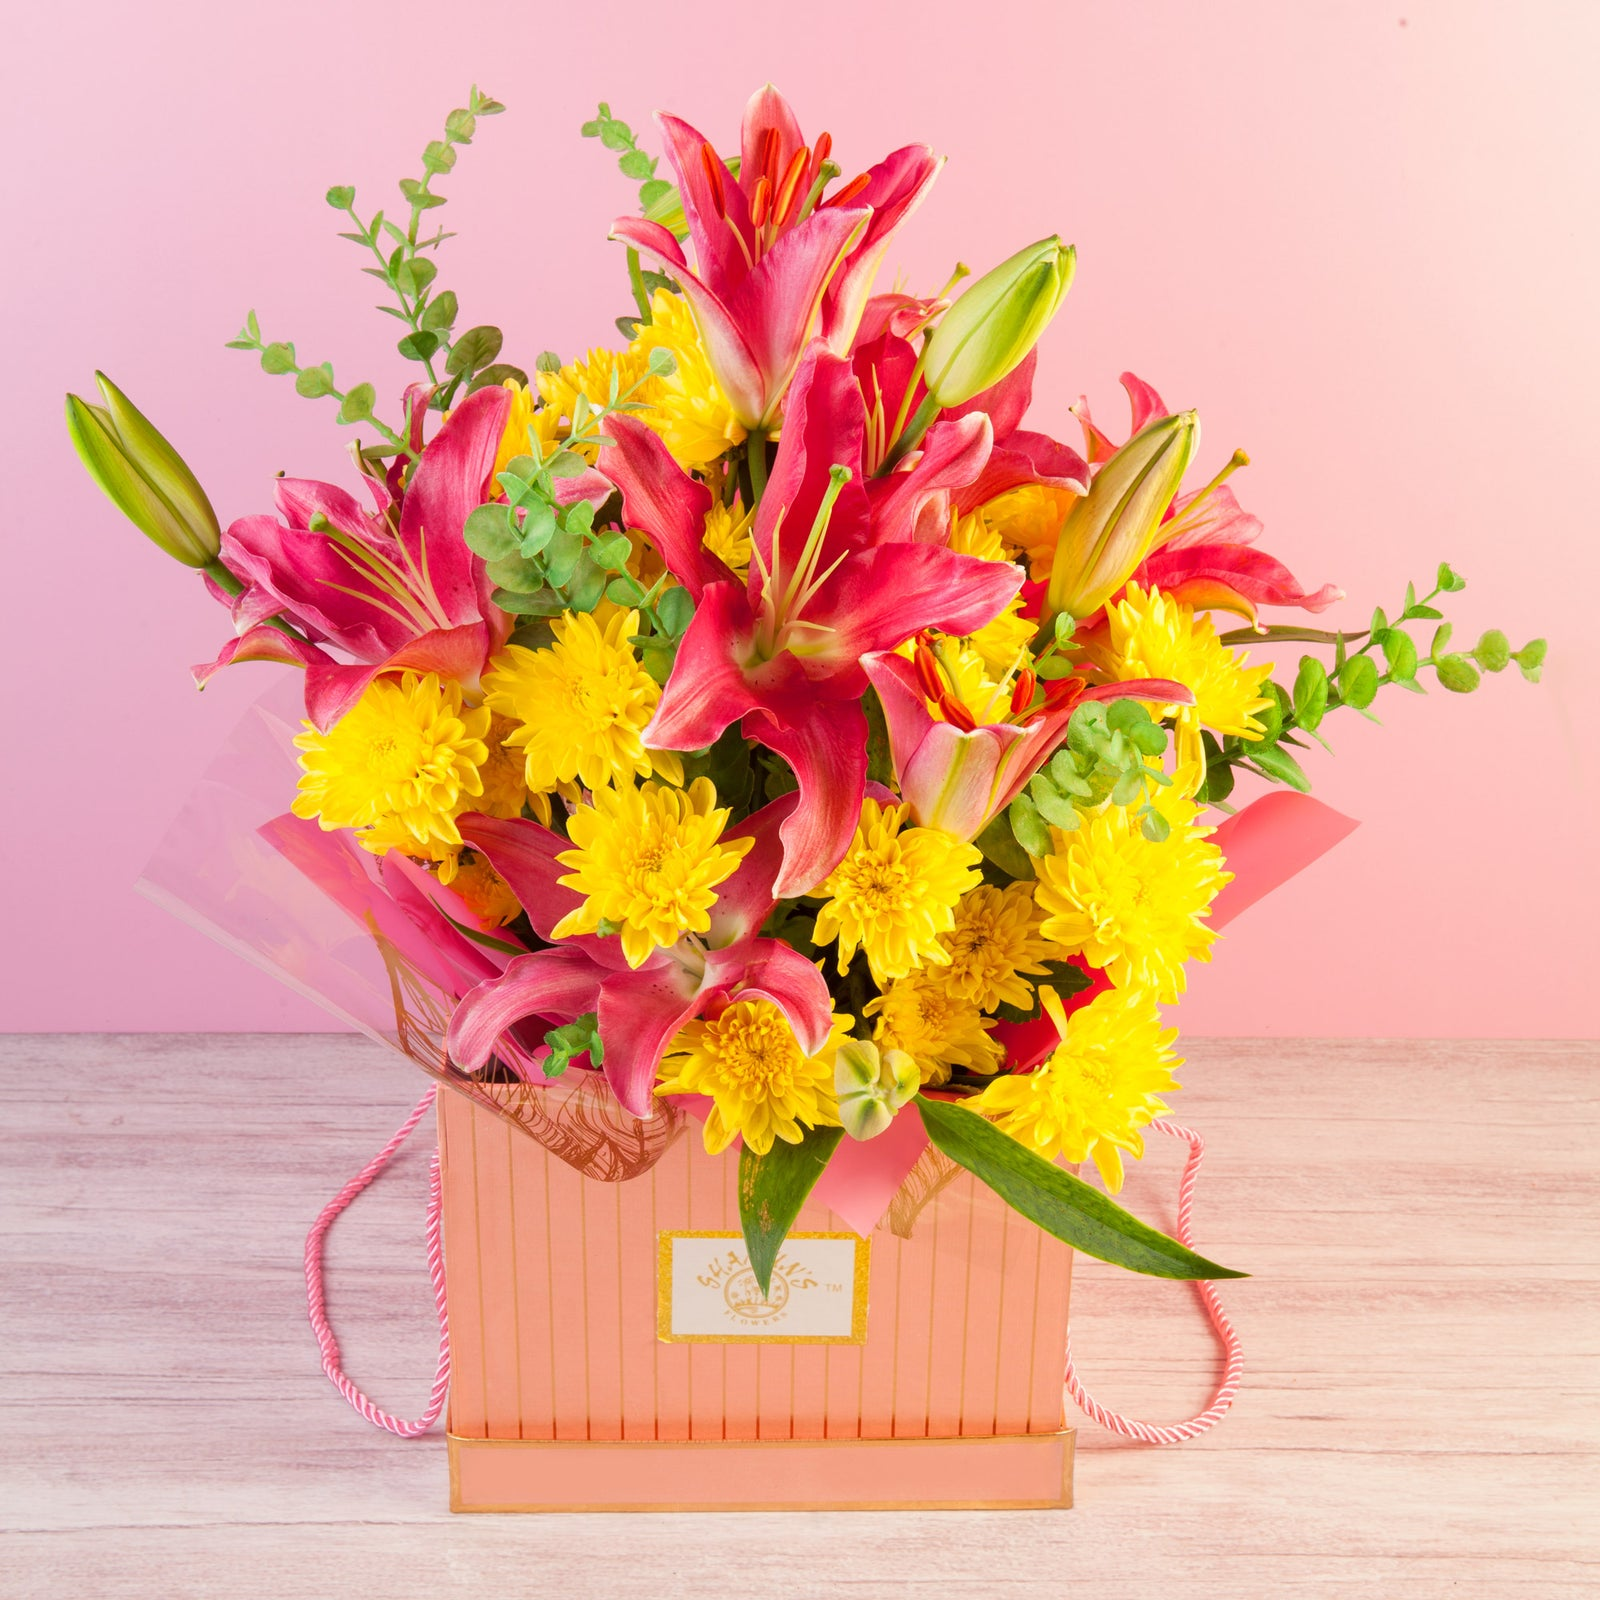 Lilies & Chrysanthemums Boxed Flower delivery in Pune